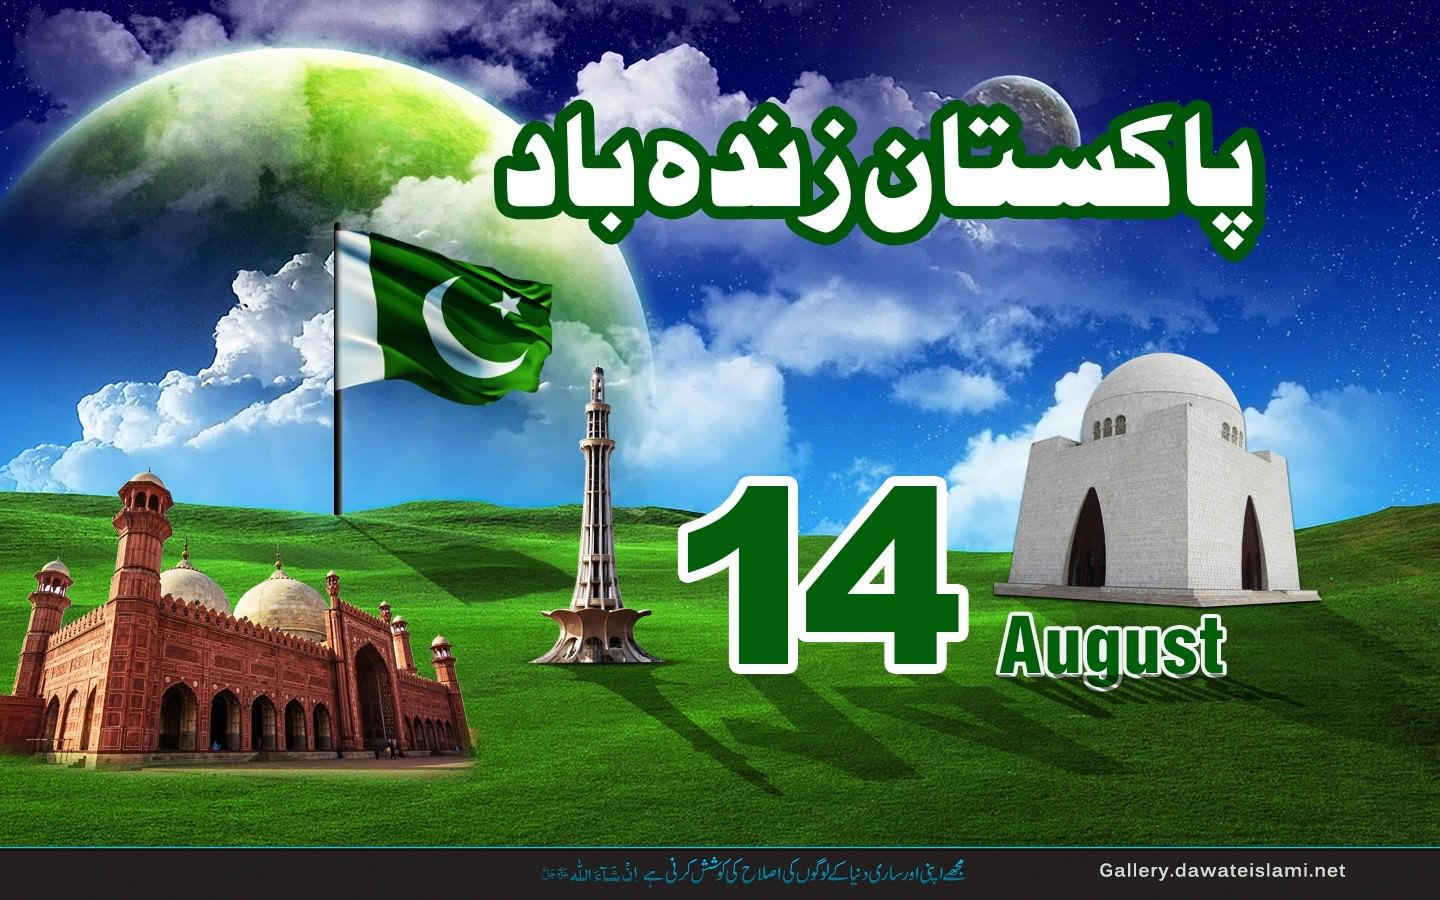 Pakistan zindabad- 14 August